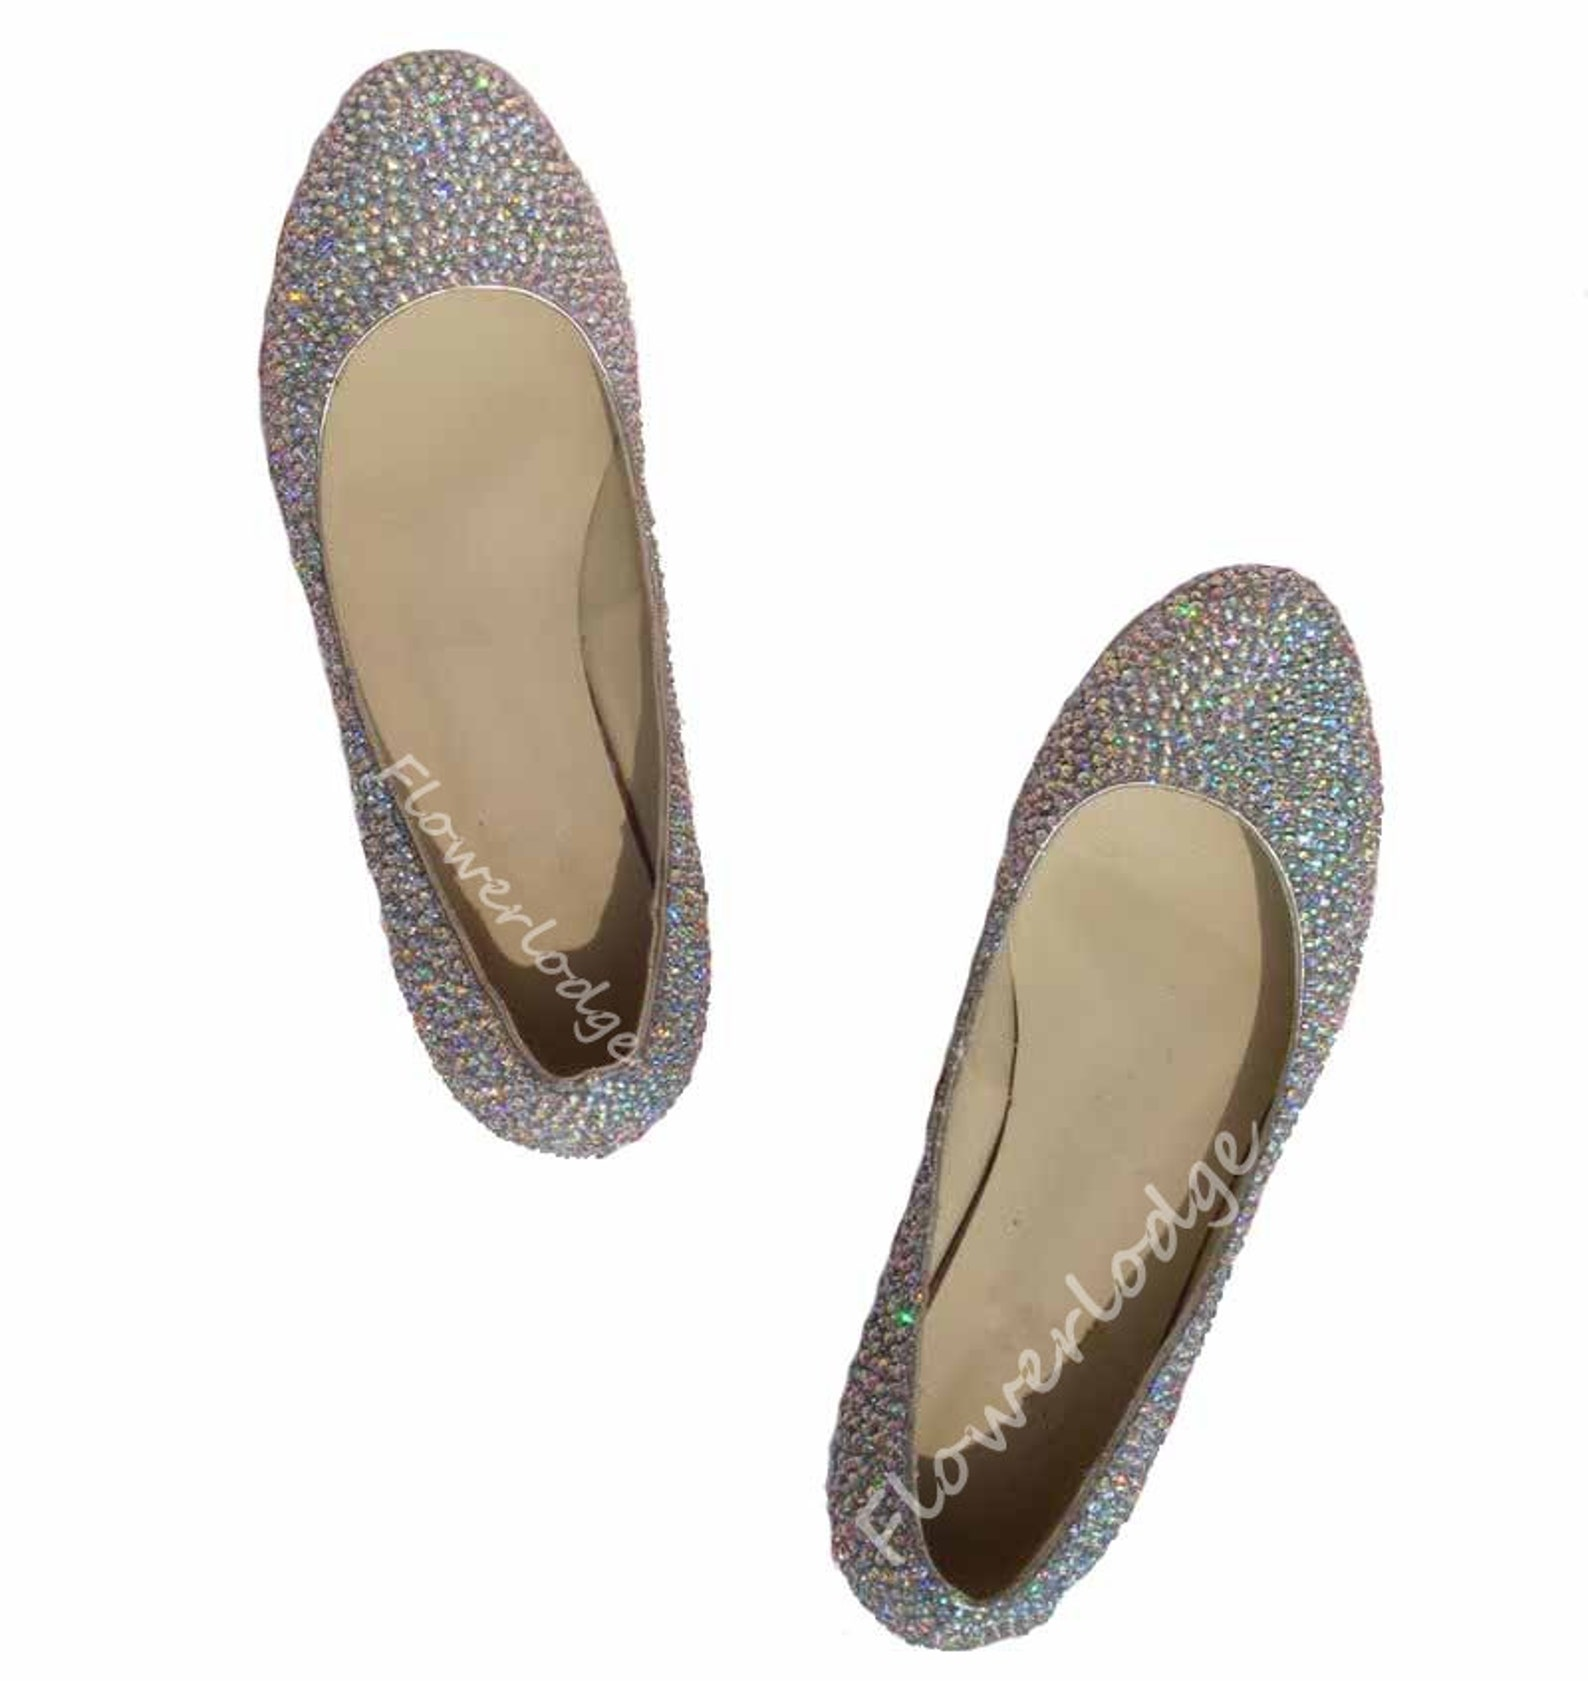 ballet flats rhinestone ballet slippers, ab jewelry ballet shoes custom women pumps heels, crystal prom shoes closed toe heels